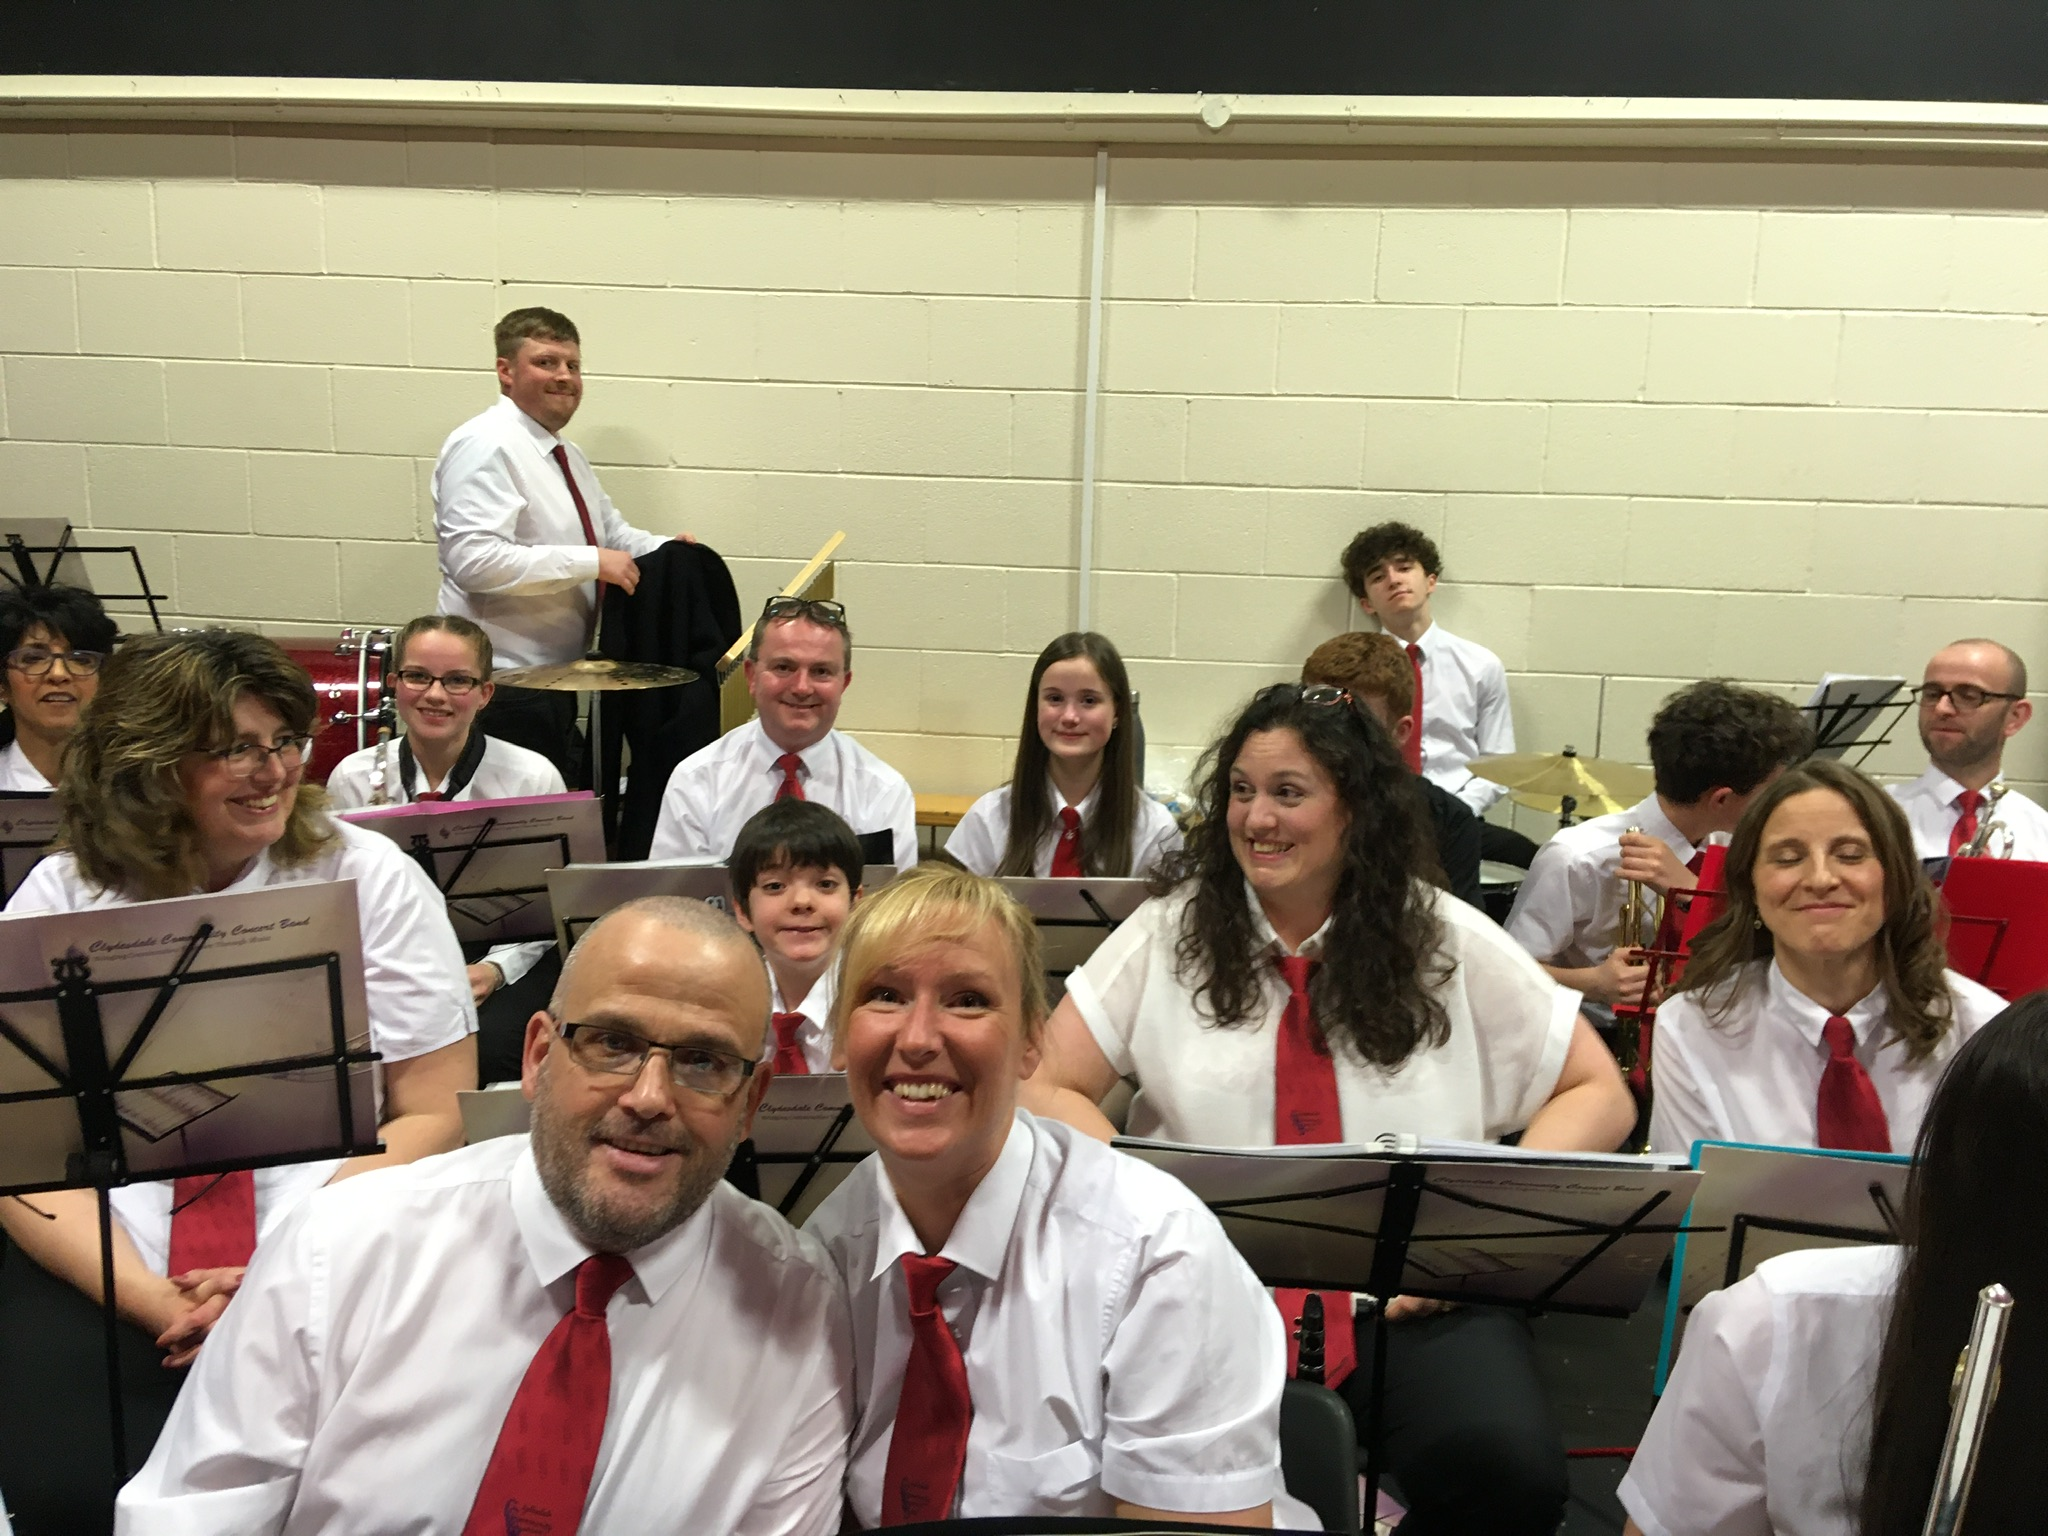 Clydesdale Community Concert Band